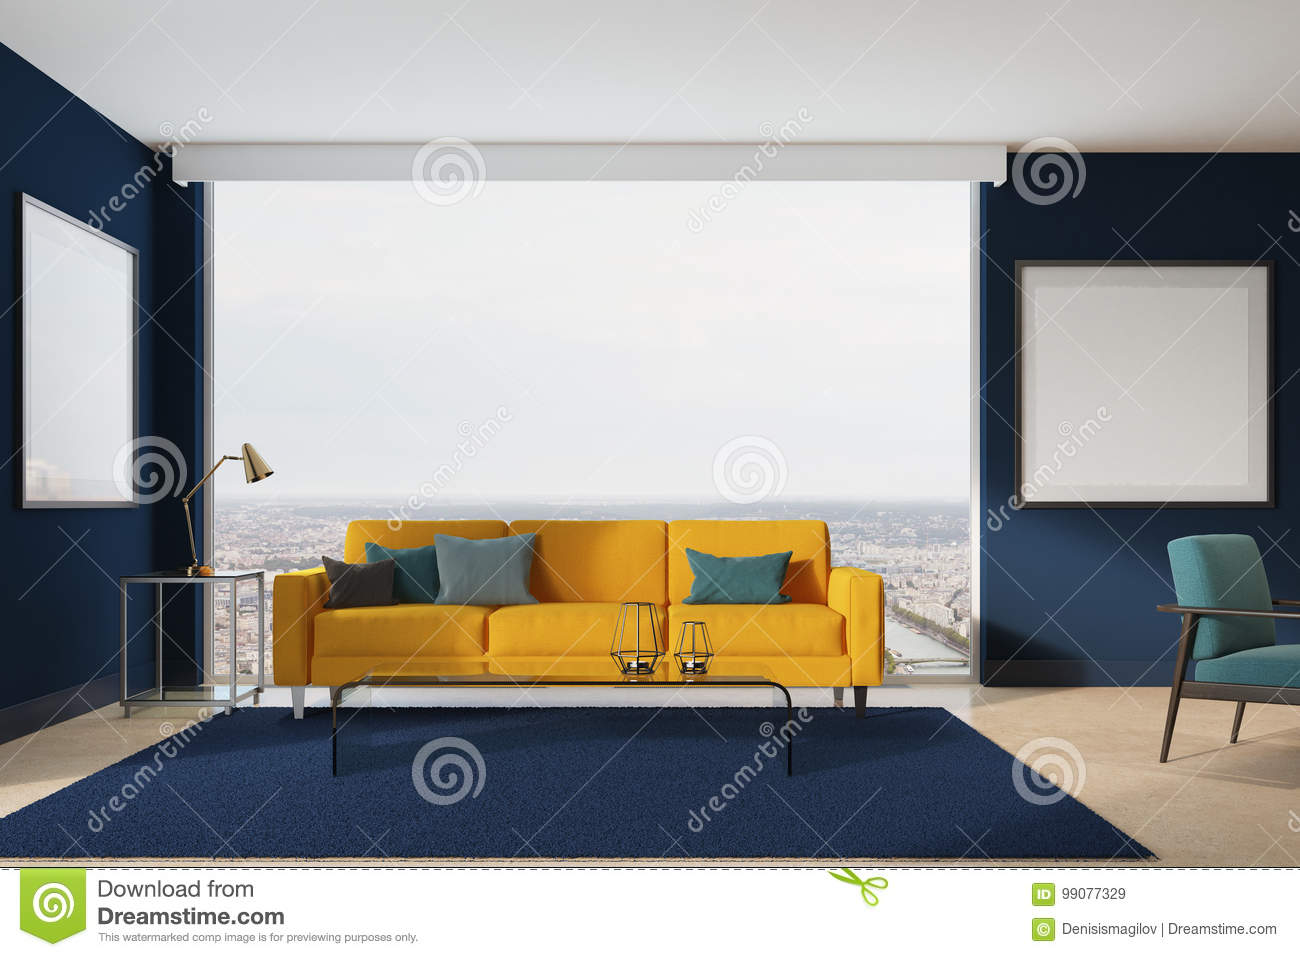 Salon Jaune Et Bleu Sofa Jaune Salon Bleu Illustration Stock Illustration Du